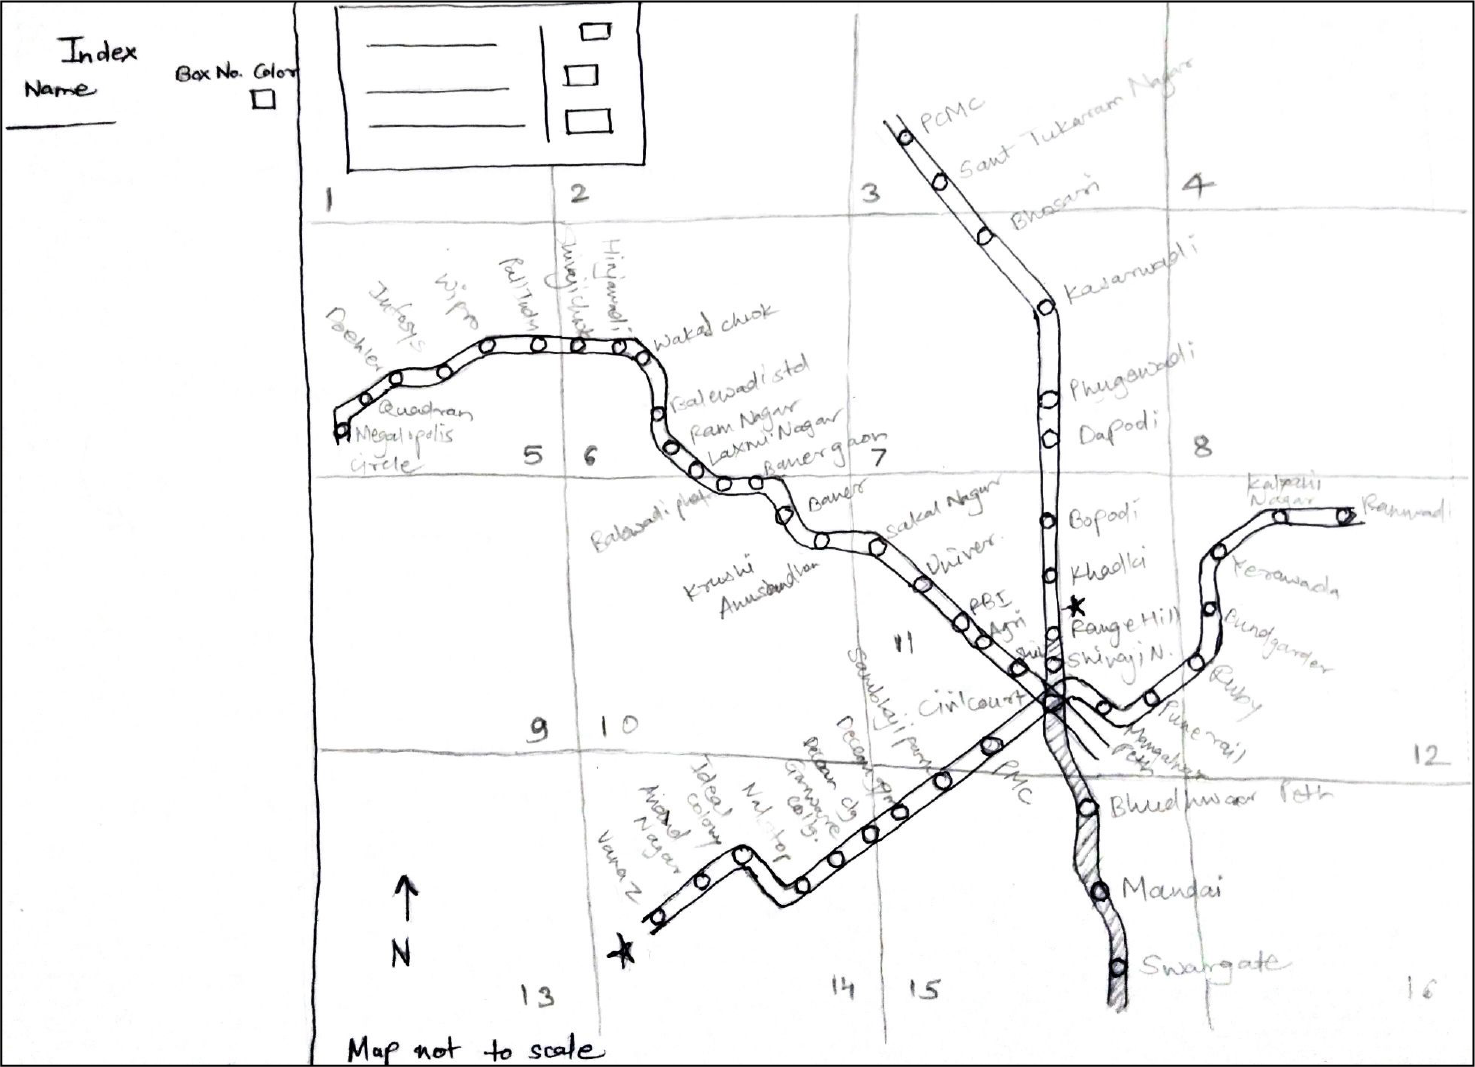 The first schematic diagram of Pune Metro Map after brainstorming.